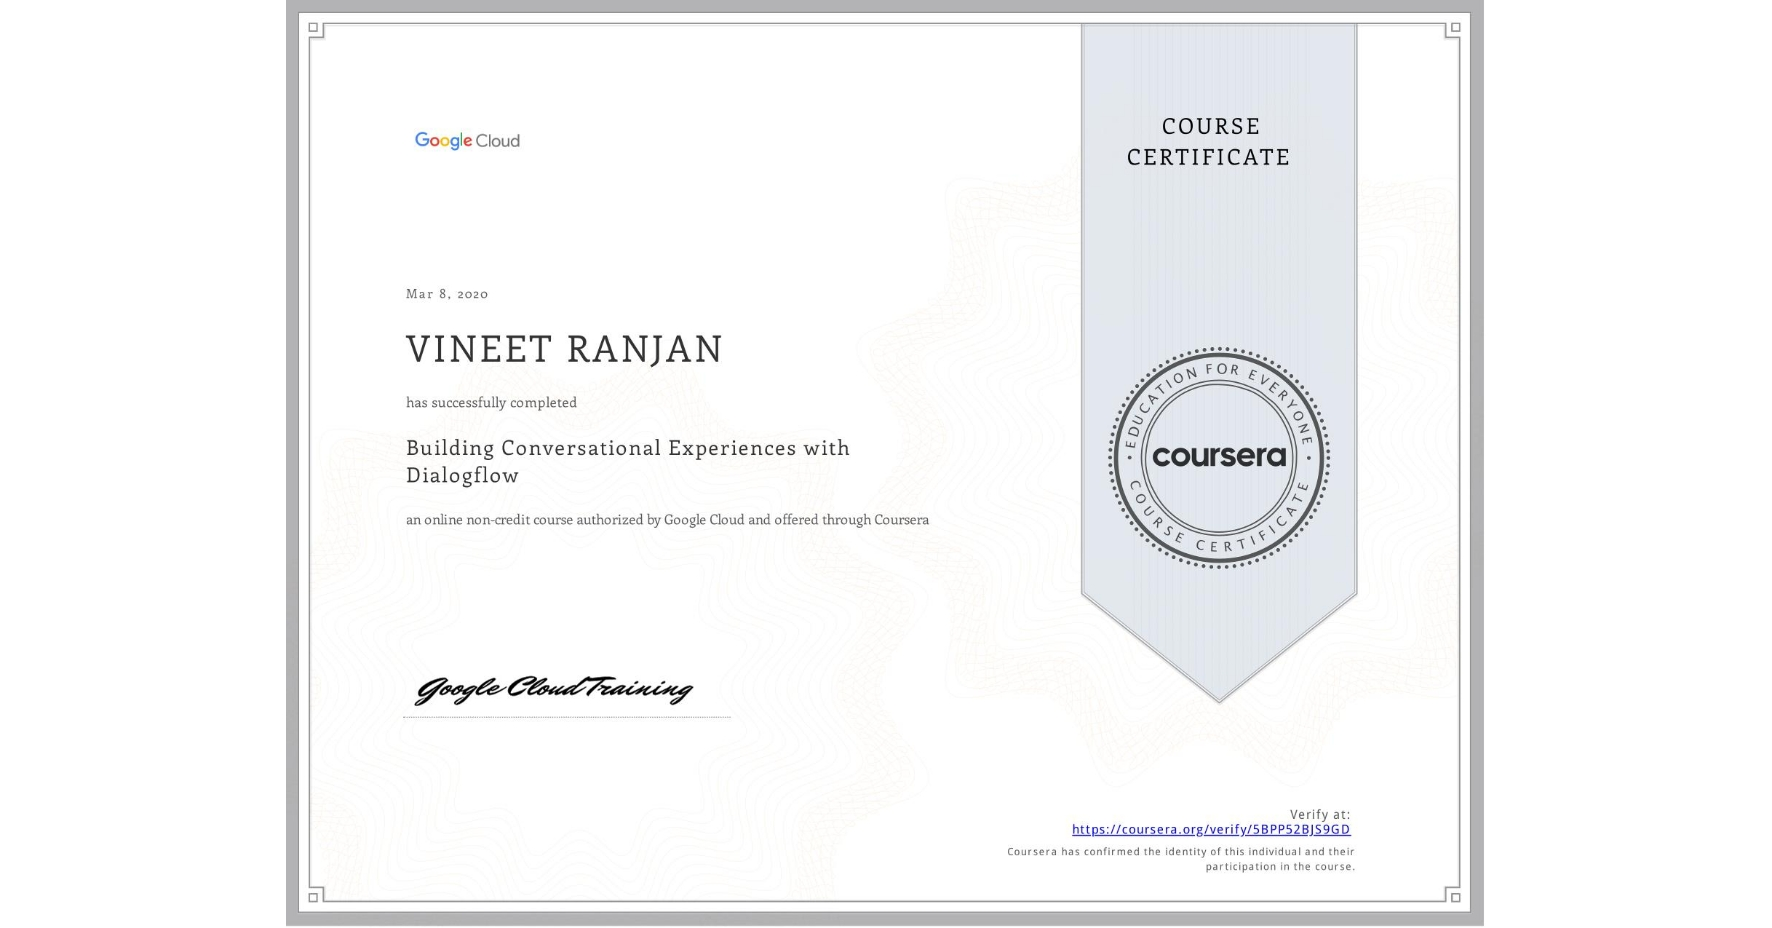 View certificate for VINEET RANJAN, Building Conversational Experiences with Dialogflow, an online non-credit course authorized by Google Cloud and offered through Coursera